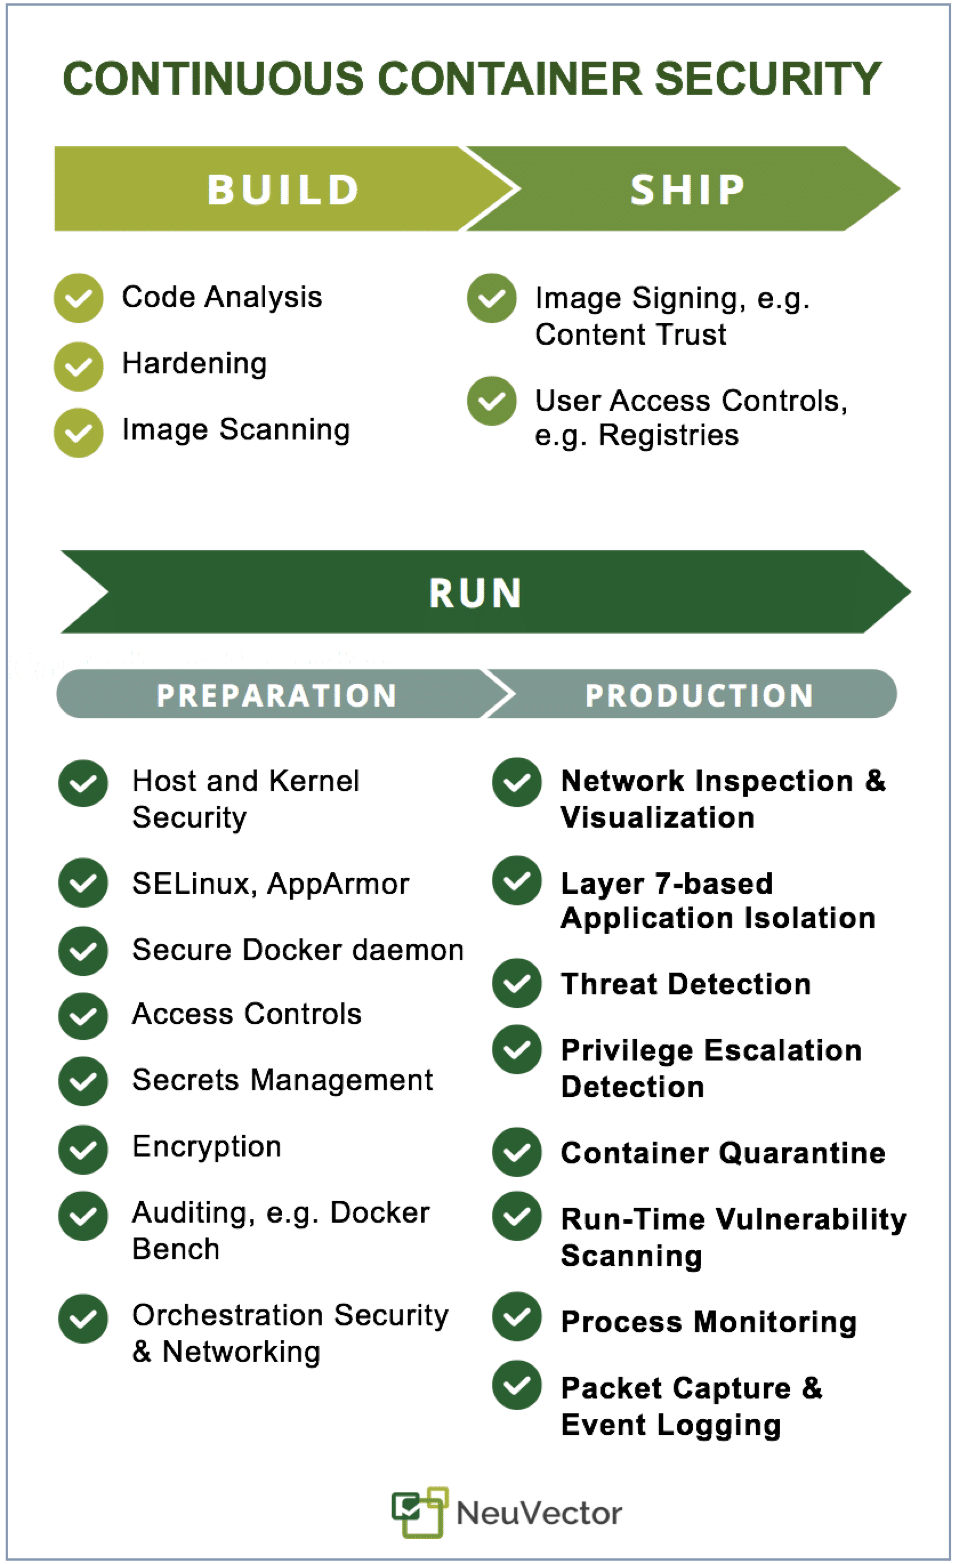 Continuous Container Security InfoGraphic